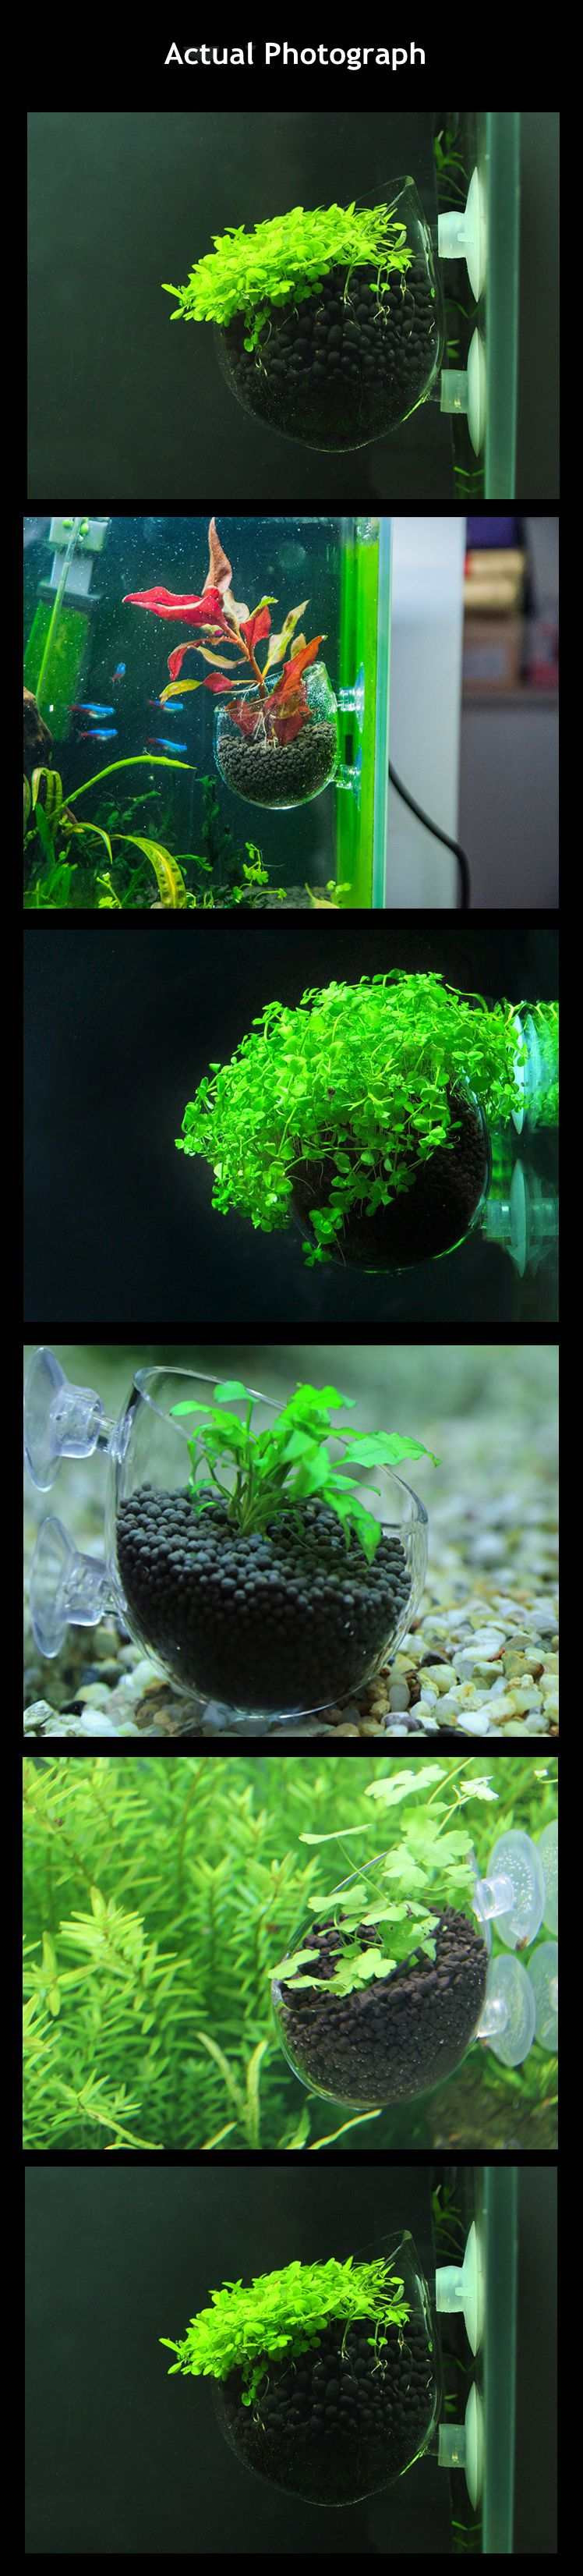 plants for betta vase of aqua plant glass nursery cup water grass aquarium plants pots fish throughout mei will reply to you asapthank you we promise if you are on our products our services are not satisfied please contact us and we will provide you